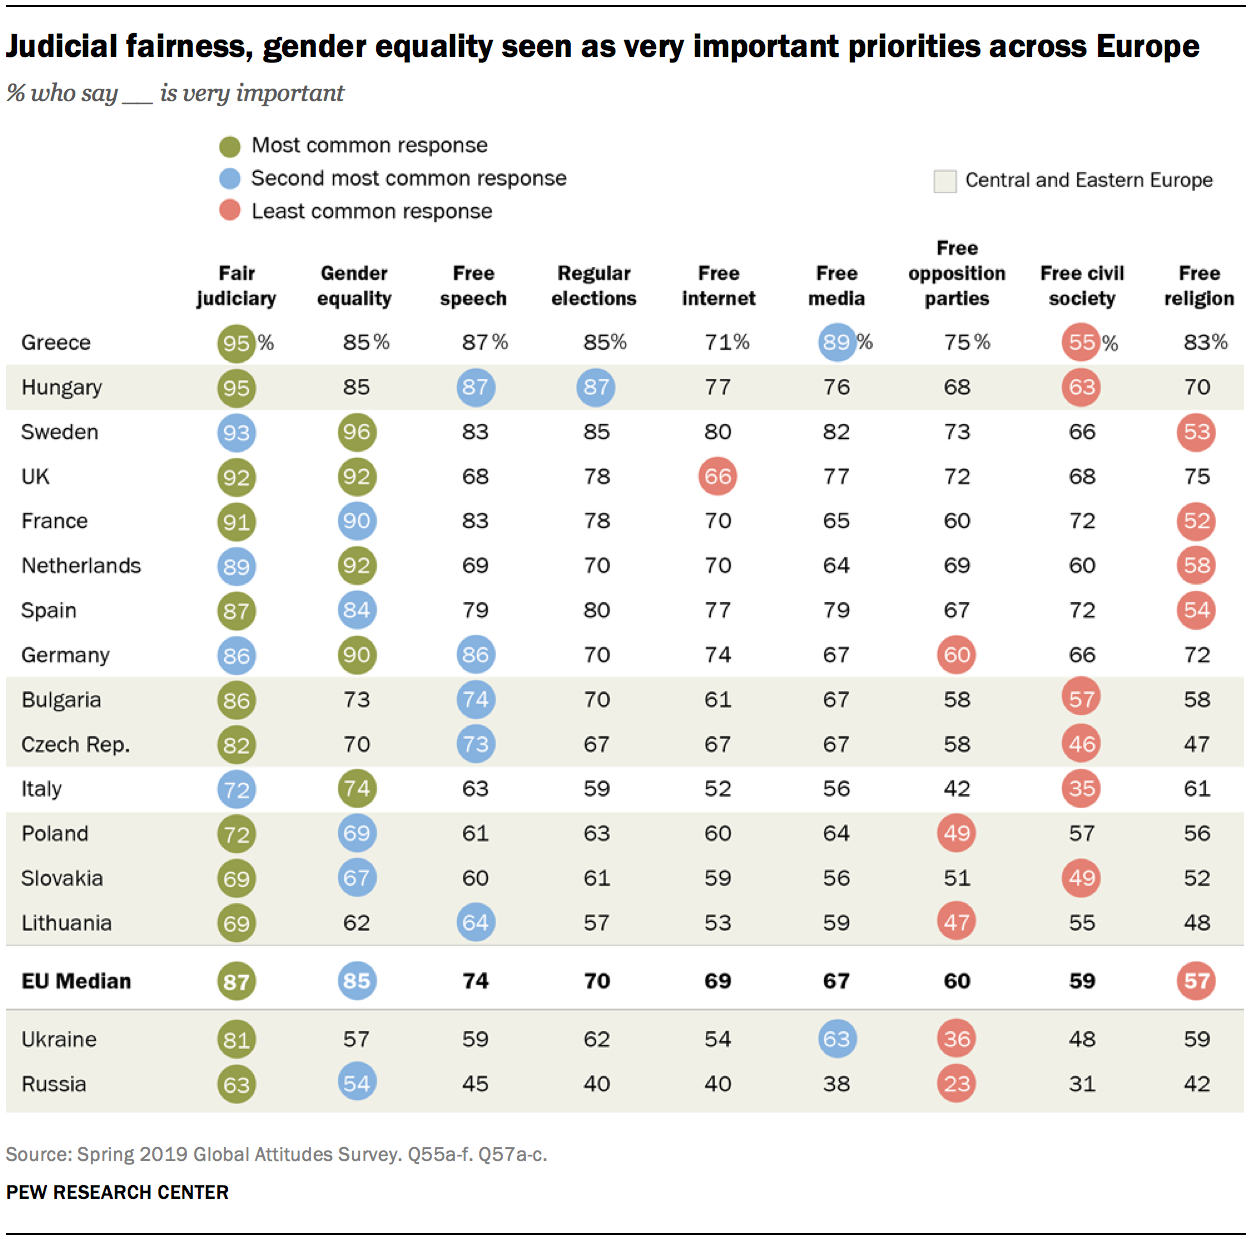 Judicial fairness, gender equality seen as very important priorities across Europe